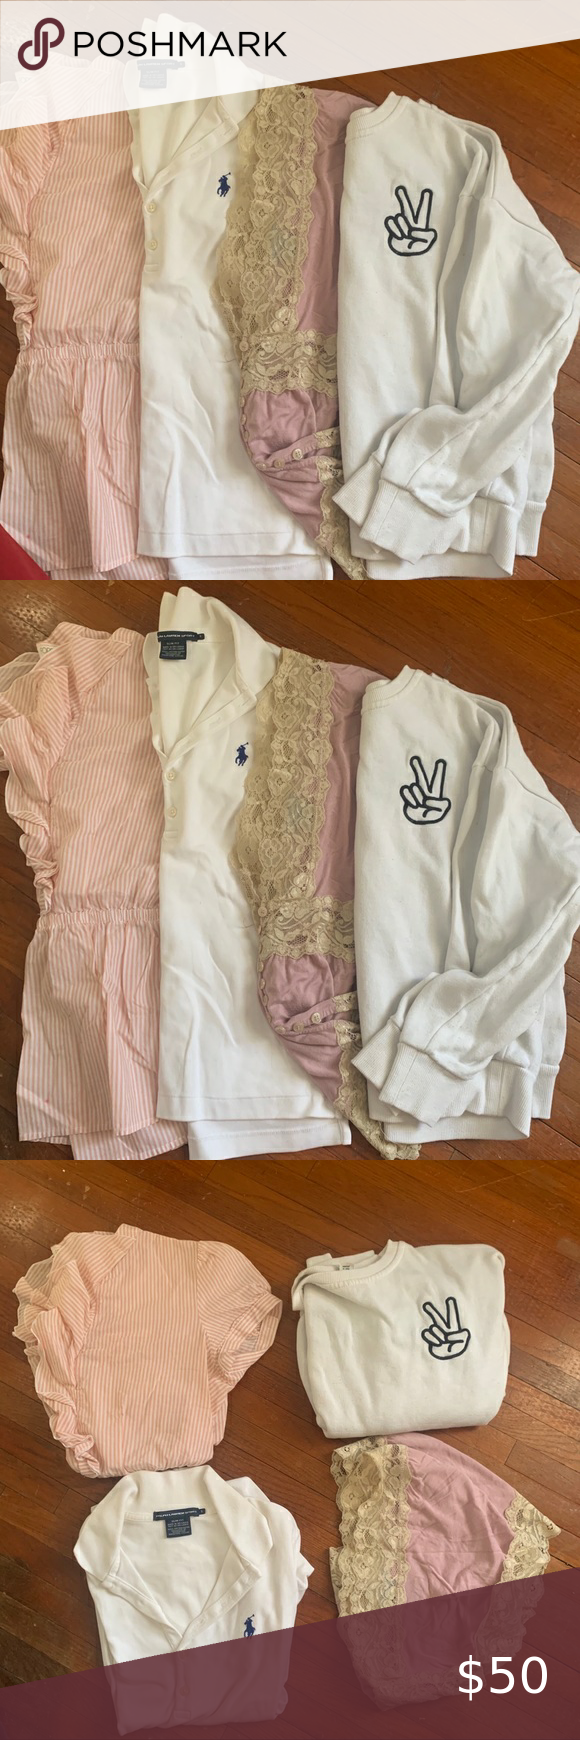 Forever 21/ polo Ralph Lauren bundle of shirts Needs a new home 🏡 Make an offer please!  Please see photos for me info  I am happy to answer and qu…